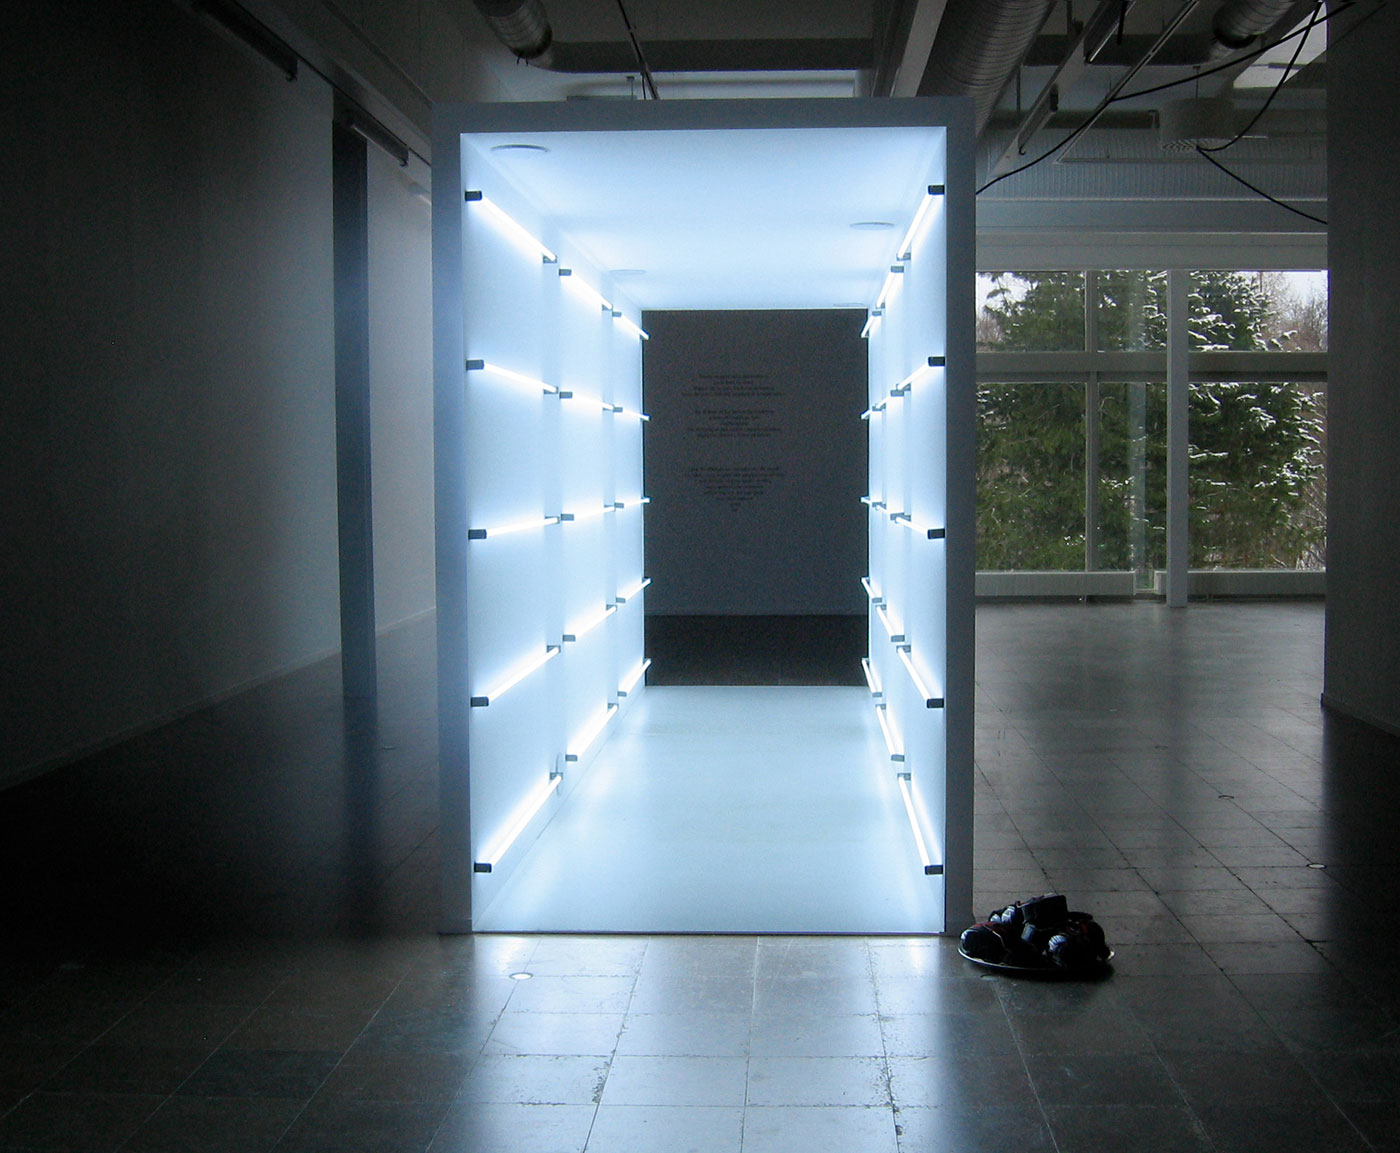 Frozen Room with 30 fluorescent tubes of 17000 Kelvin, a very cold but energizing light.